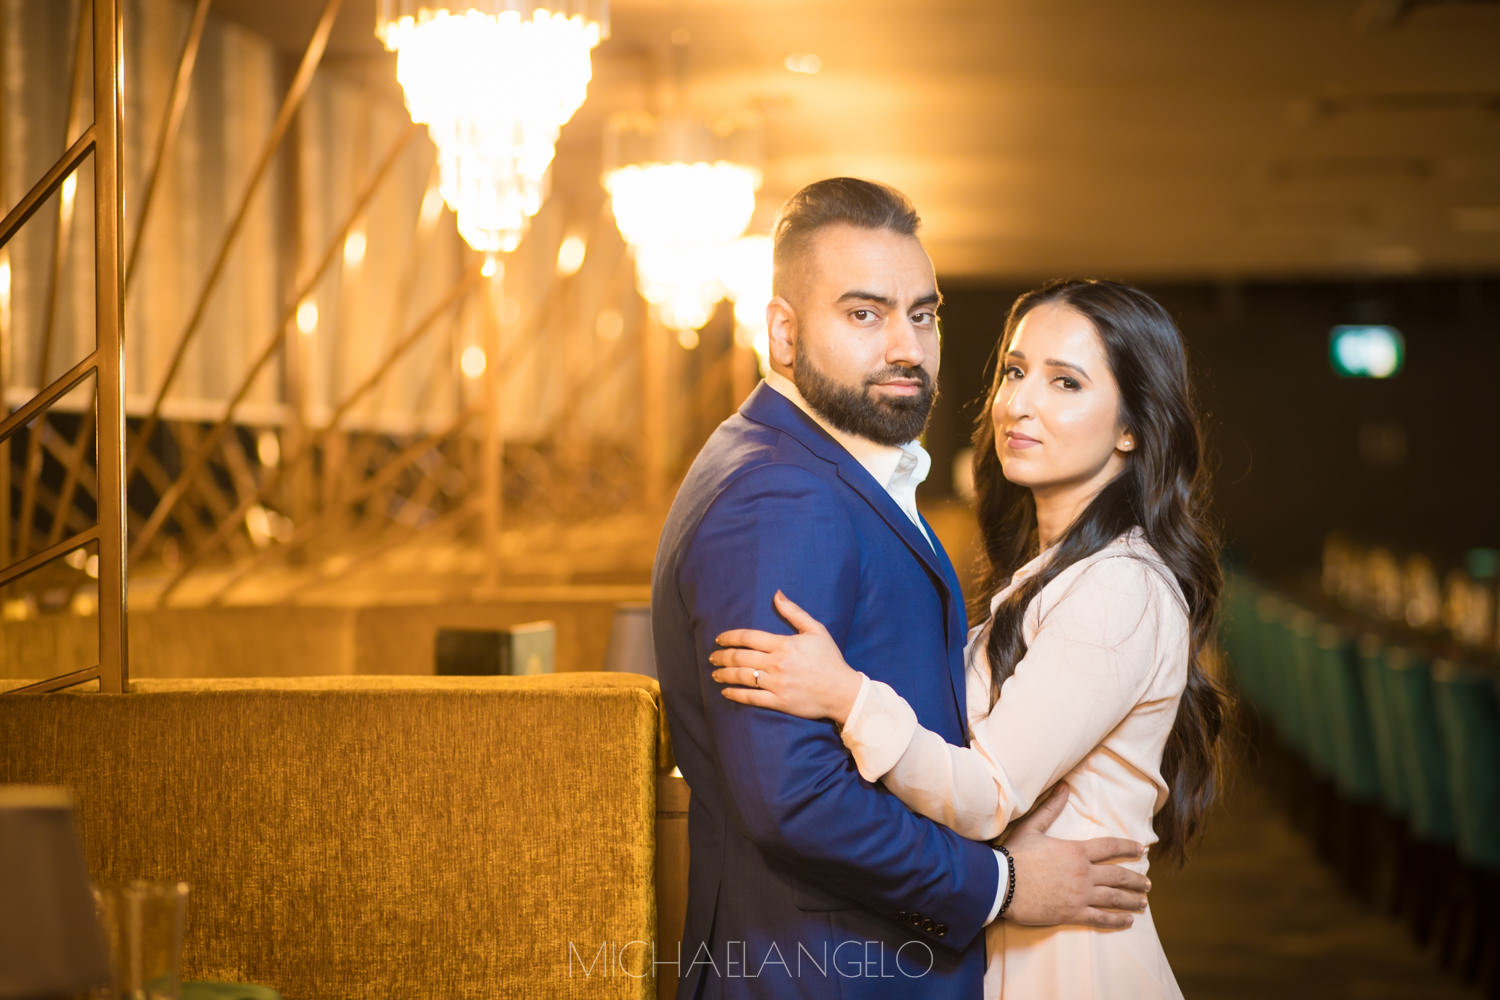 Edmonton-Wedding-Photographer-Engagement-Sessions-Ismaili-Weddings